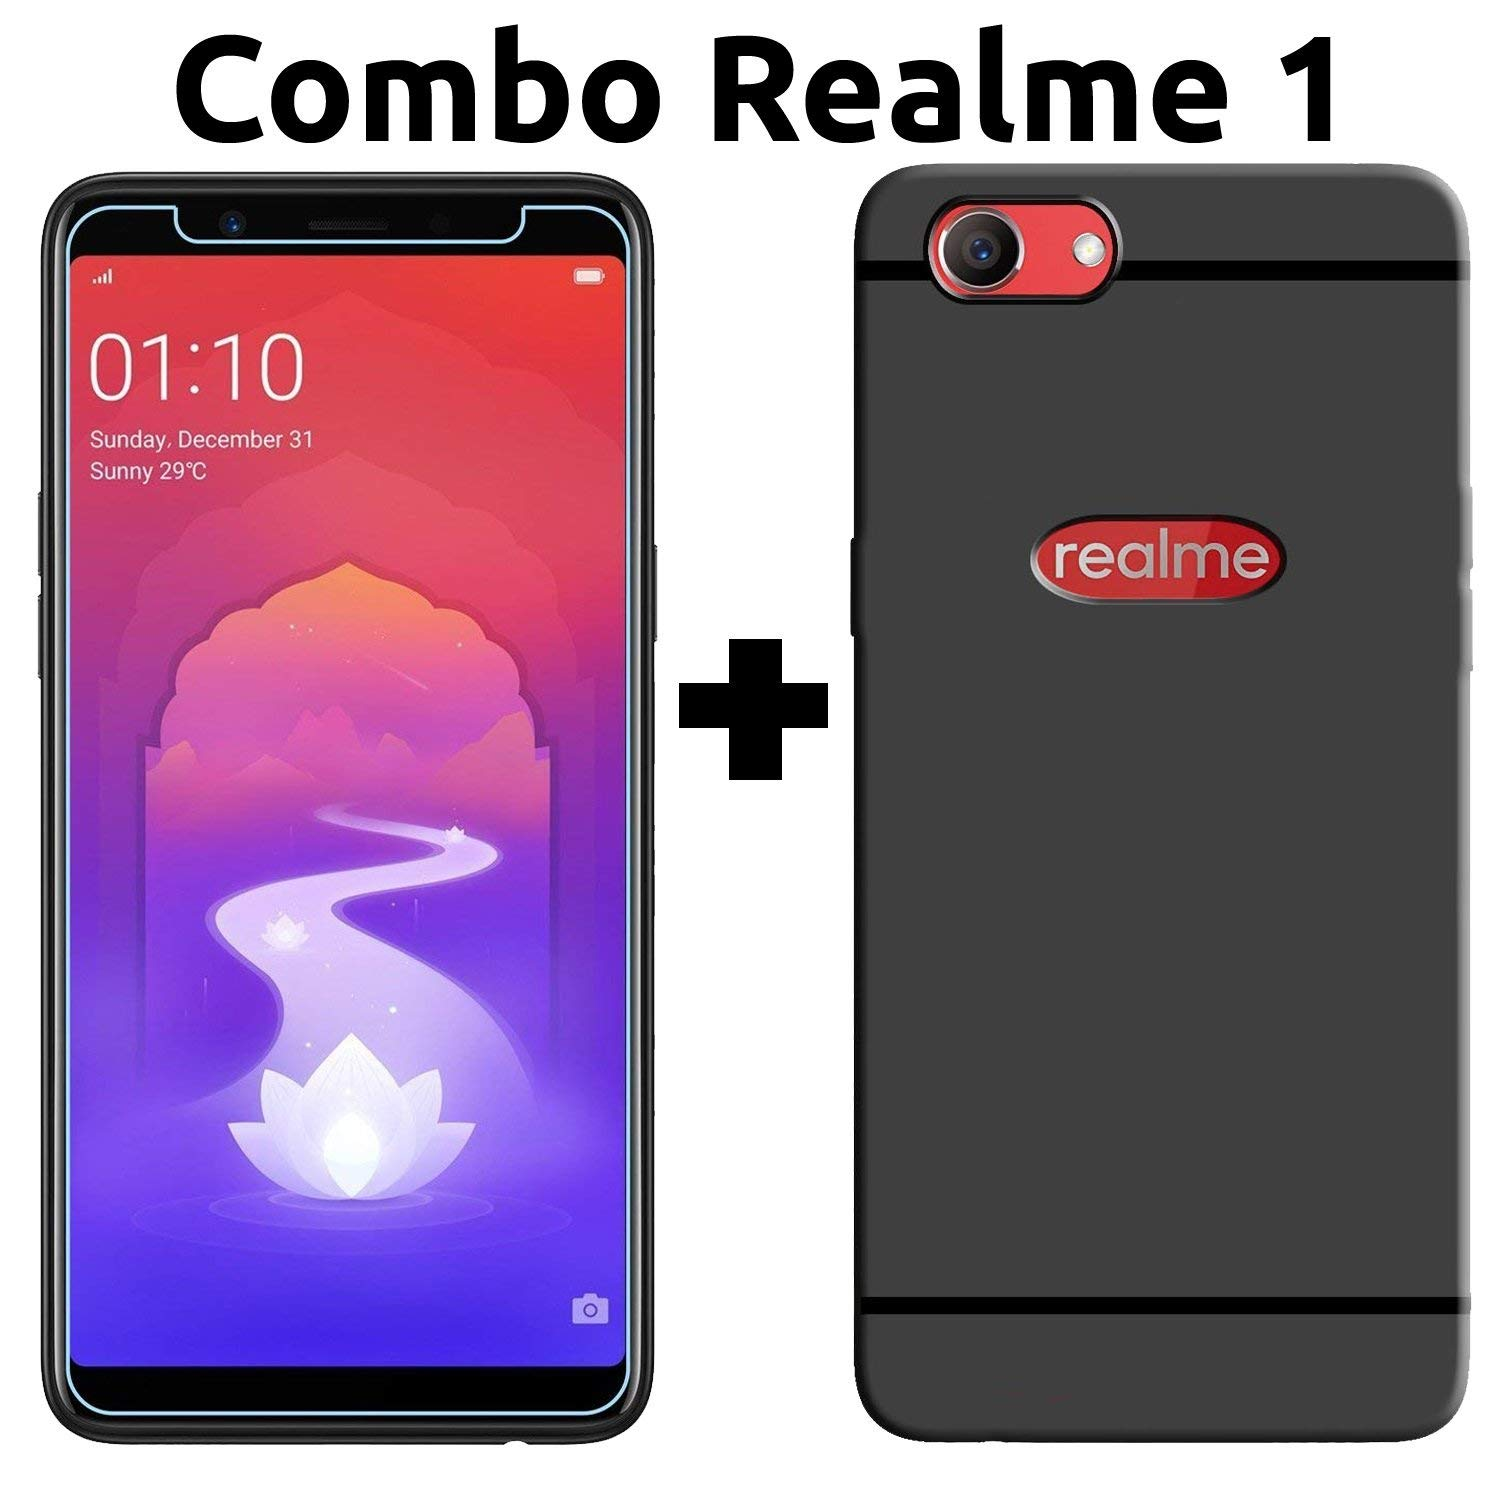 [LOOT]Oppo Realme 1 Cover & Tempered Glass (Combo Pack)